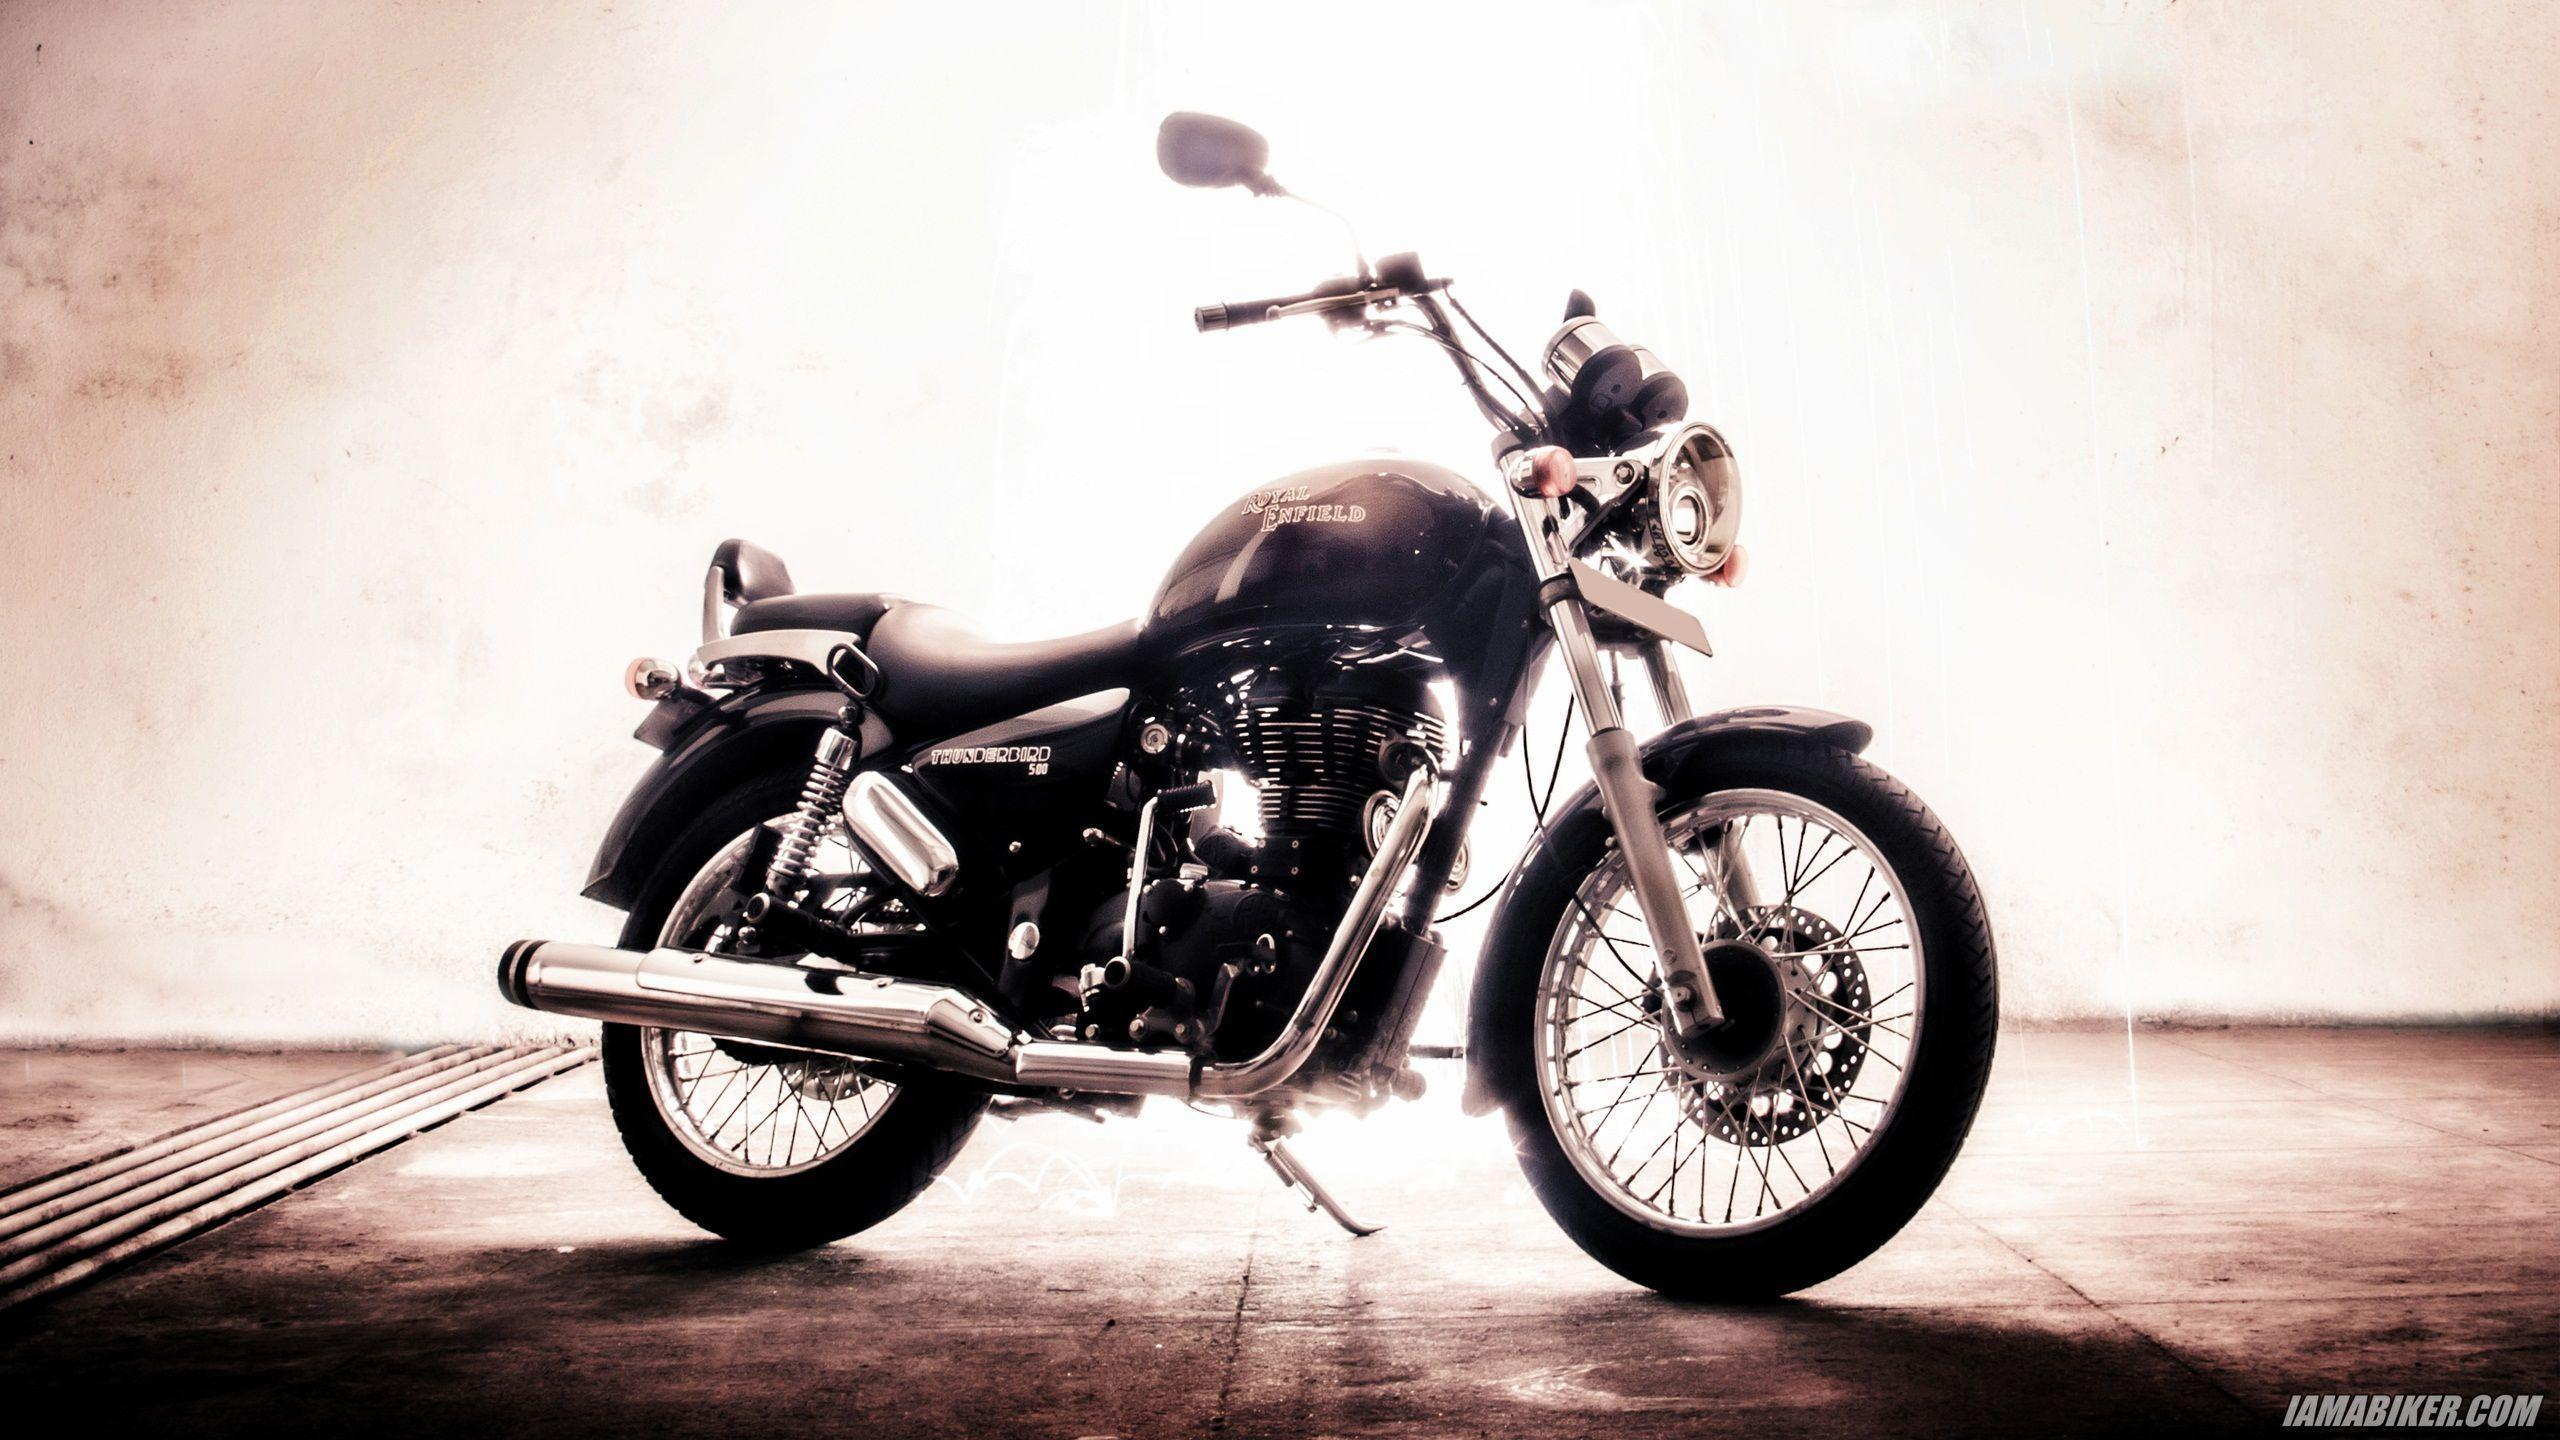 Royal Enfield Thunderbird 500x Wallpapers Wallpaper Cave